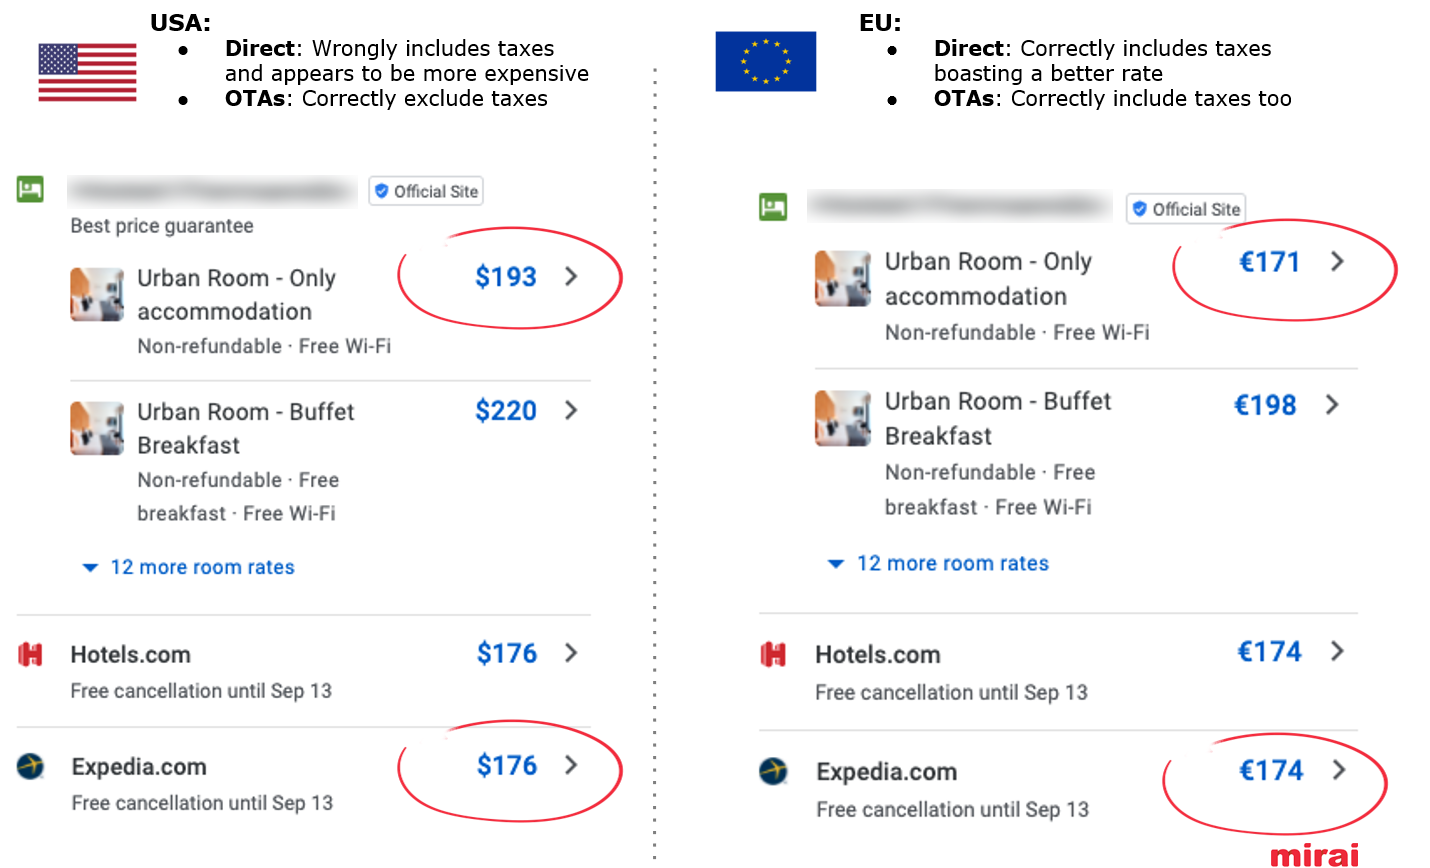 Adapt your tax information to each POS in Google Hotel Ads - Mirai